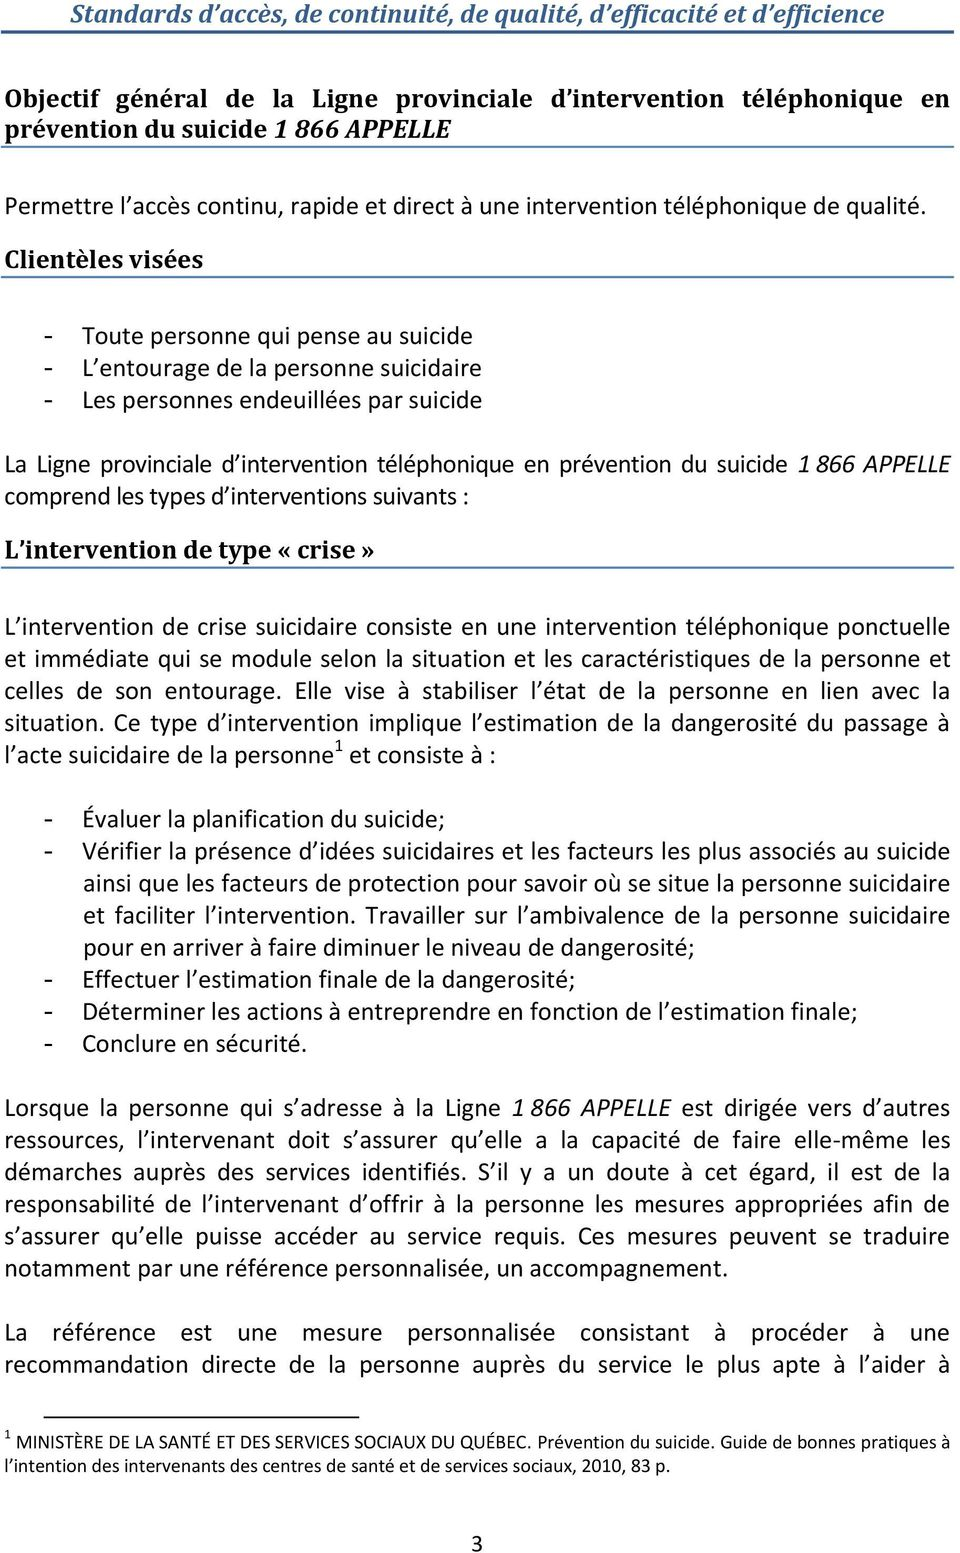 du suicide 1 866 APPELLE comprend les types d interventions suivants : L intervention de type «crise» L intervention de crise suicidaire consiste en une intervention téléphonique ponctuelle et